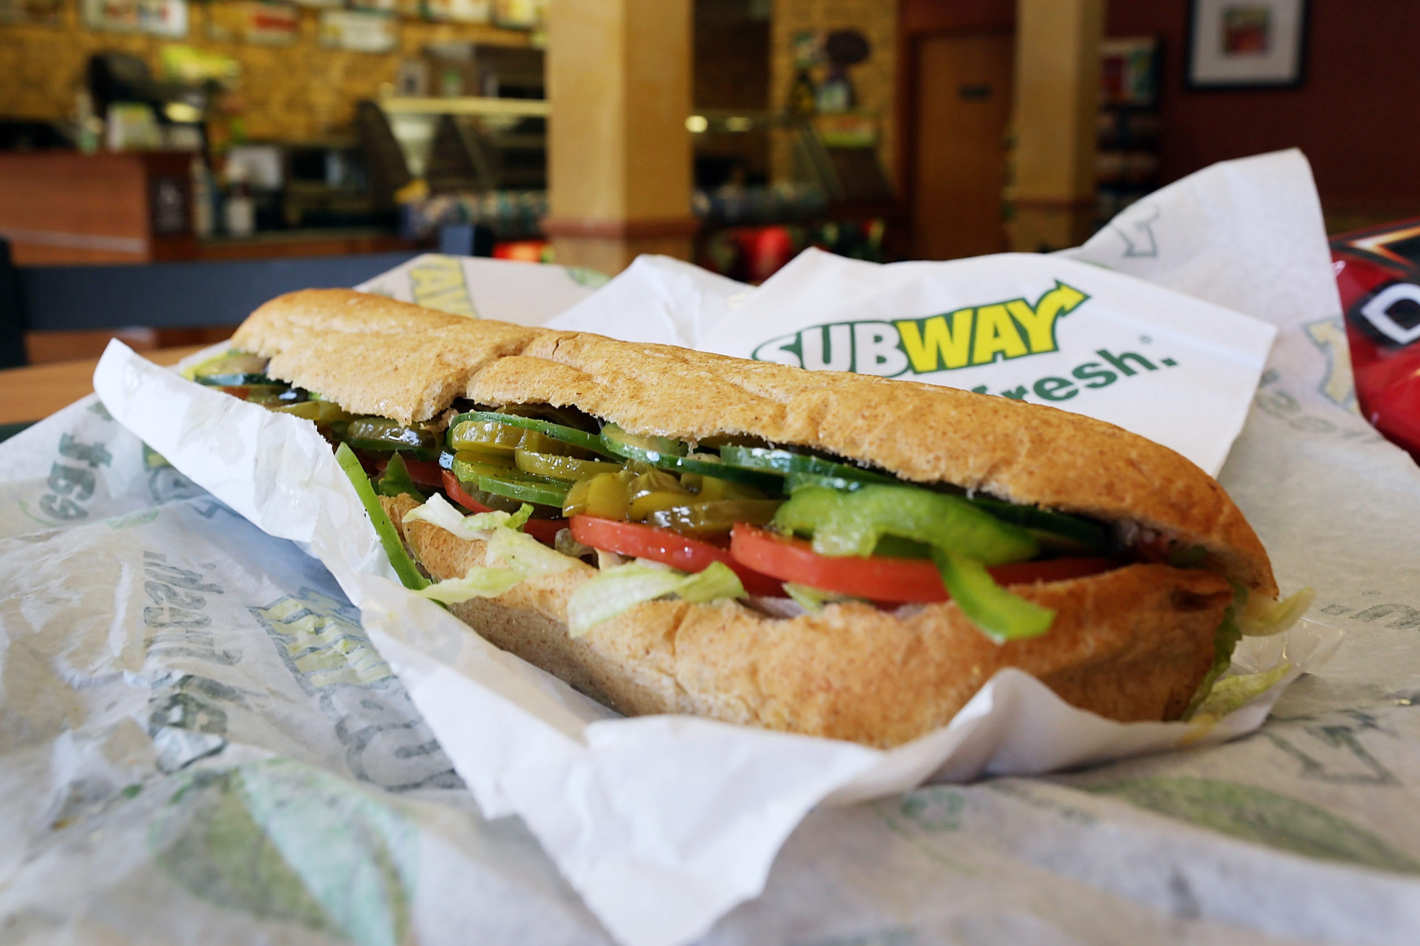 Two can dine for £7 at Subway